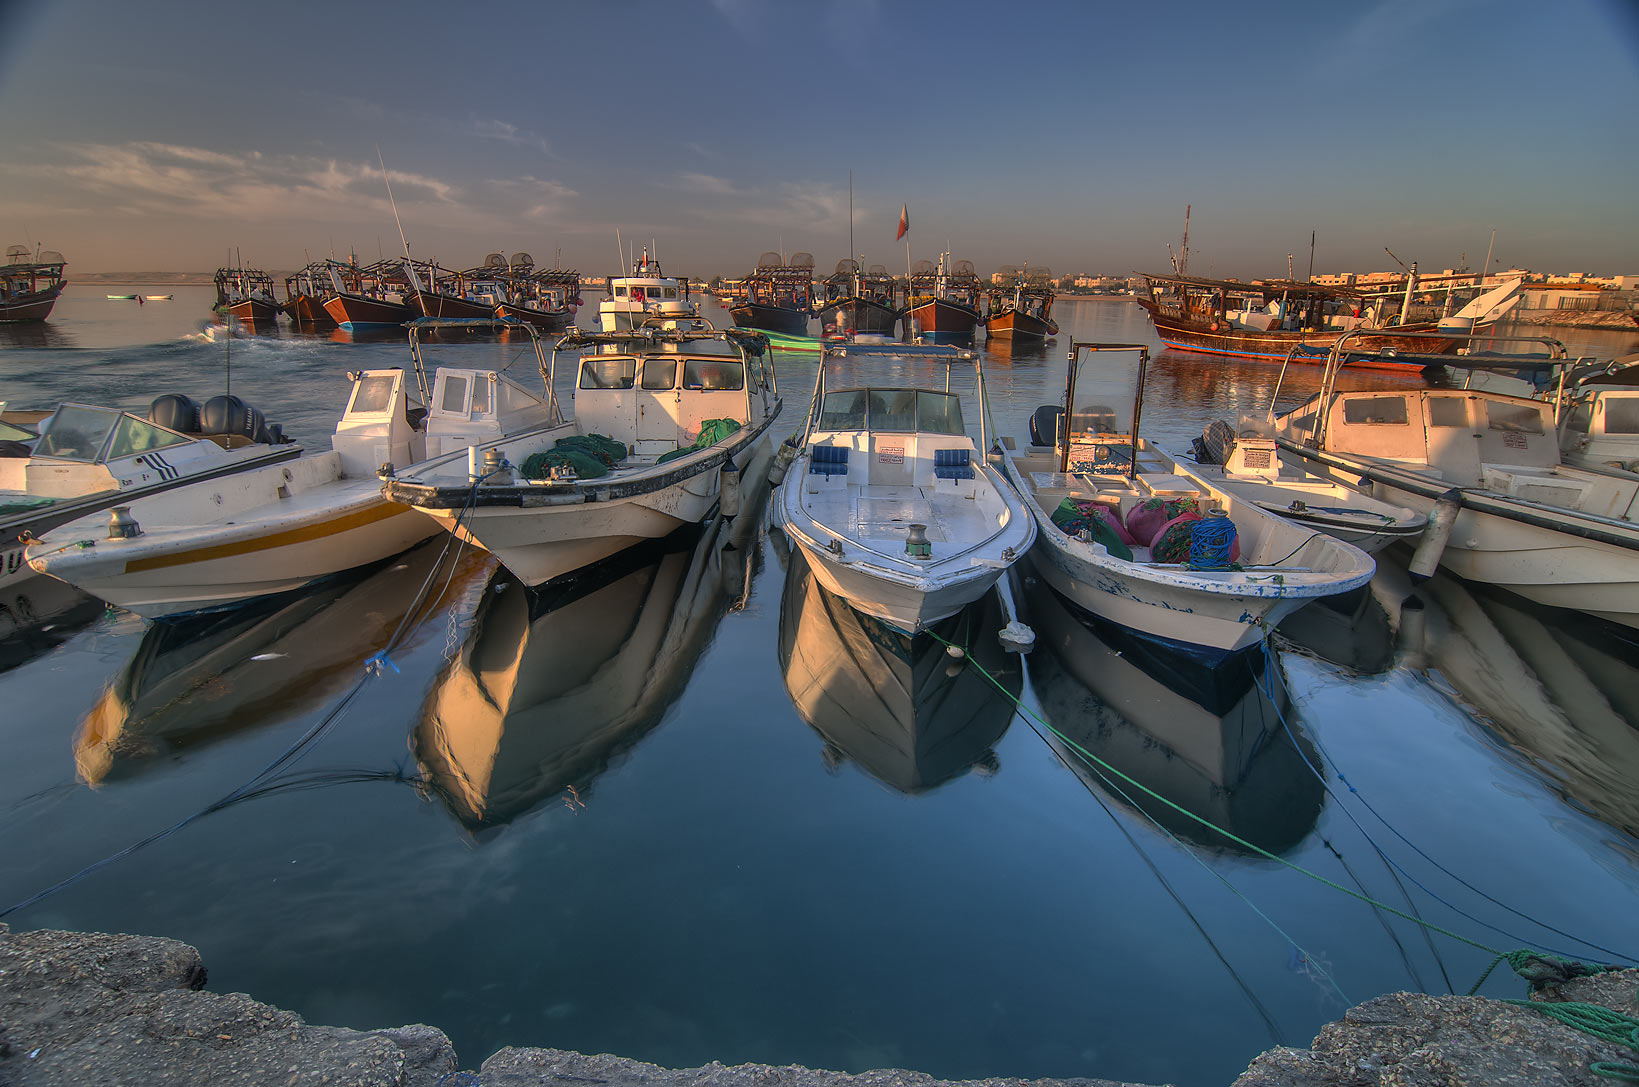 Reflections of fishing boats in harbor in Al Wakra, view from a pier. Qatar